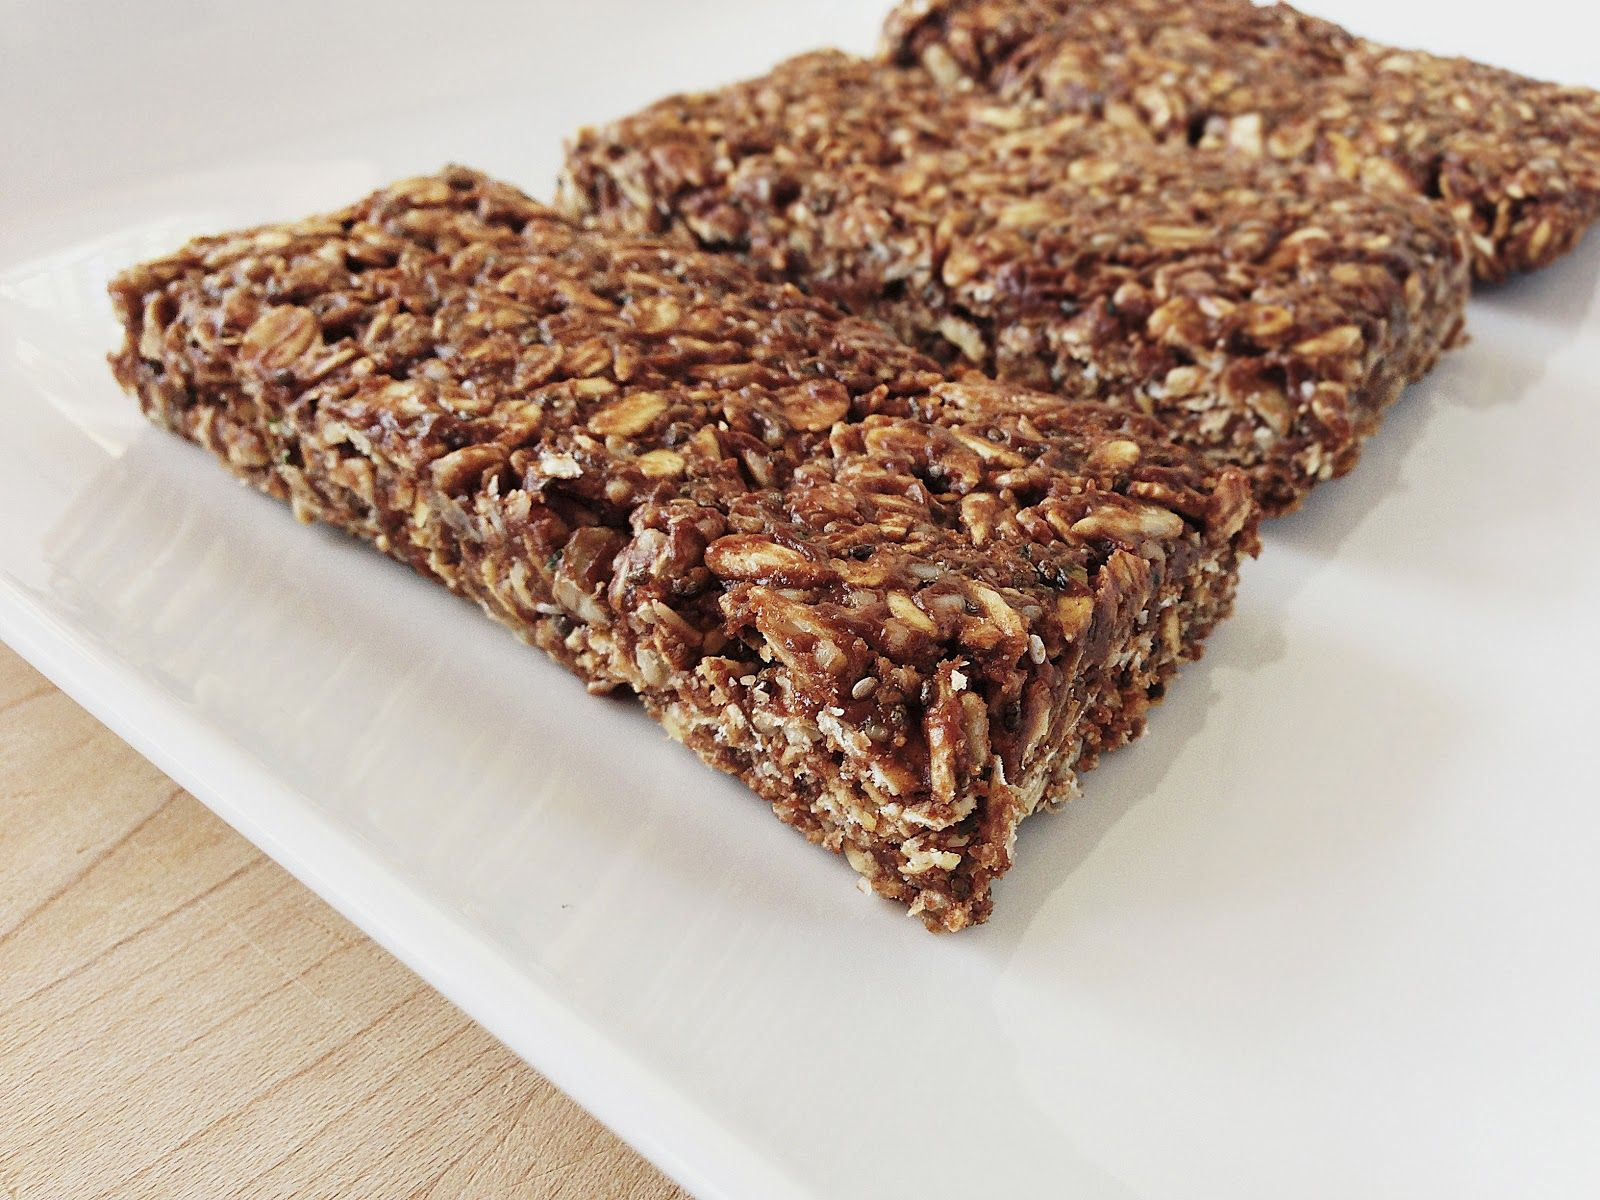 Top 10 Healthiest Snacks you Can Eat: Protein bars